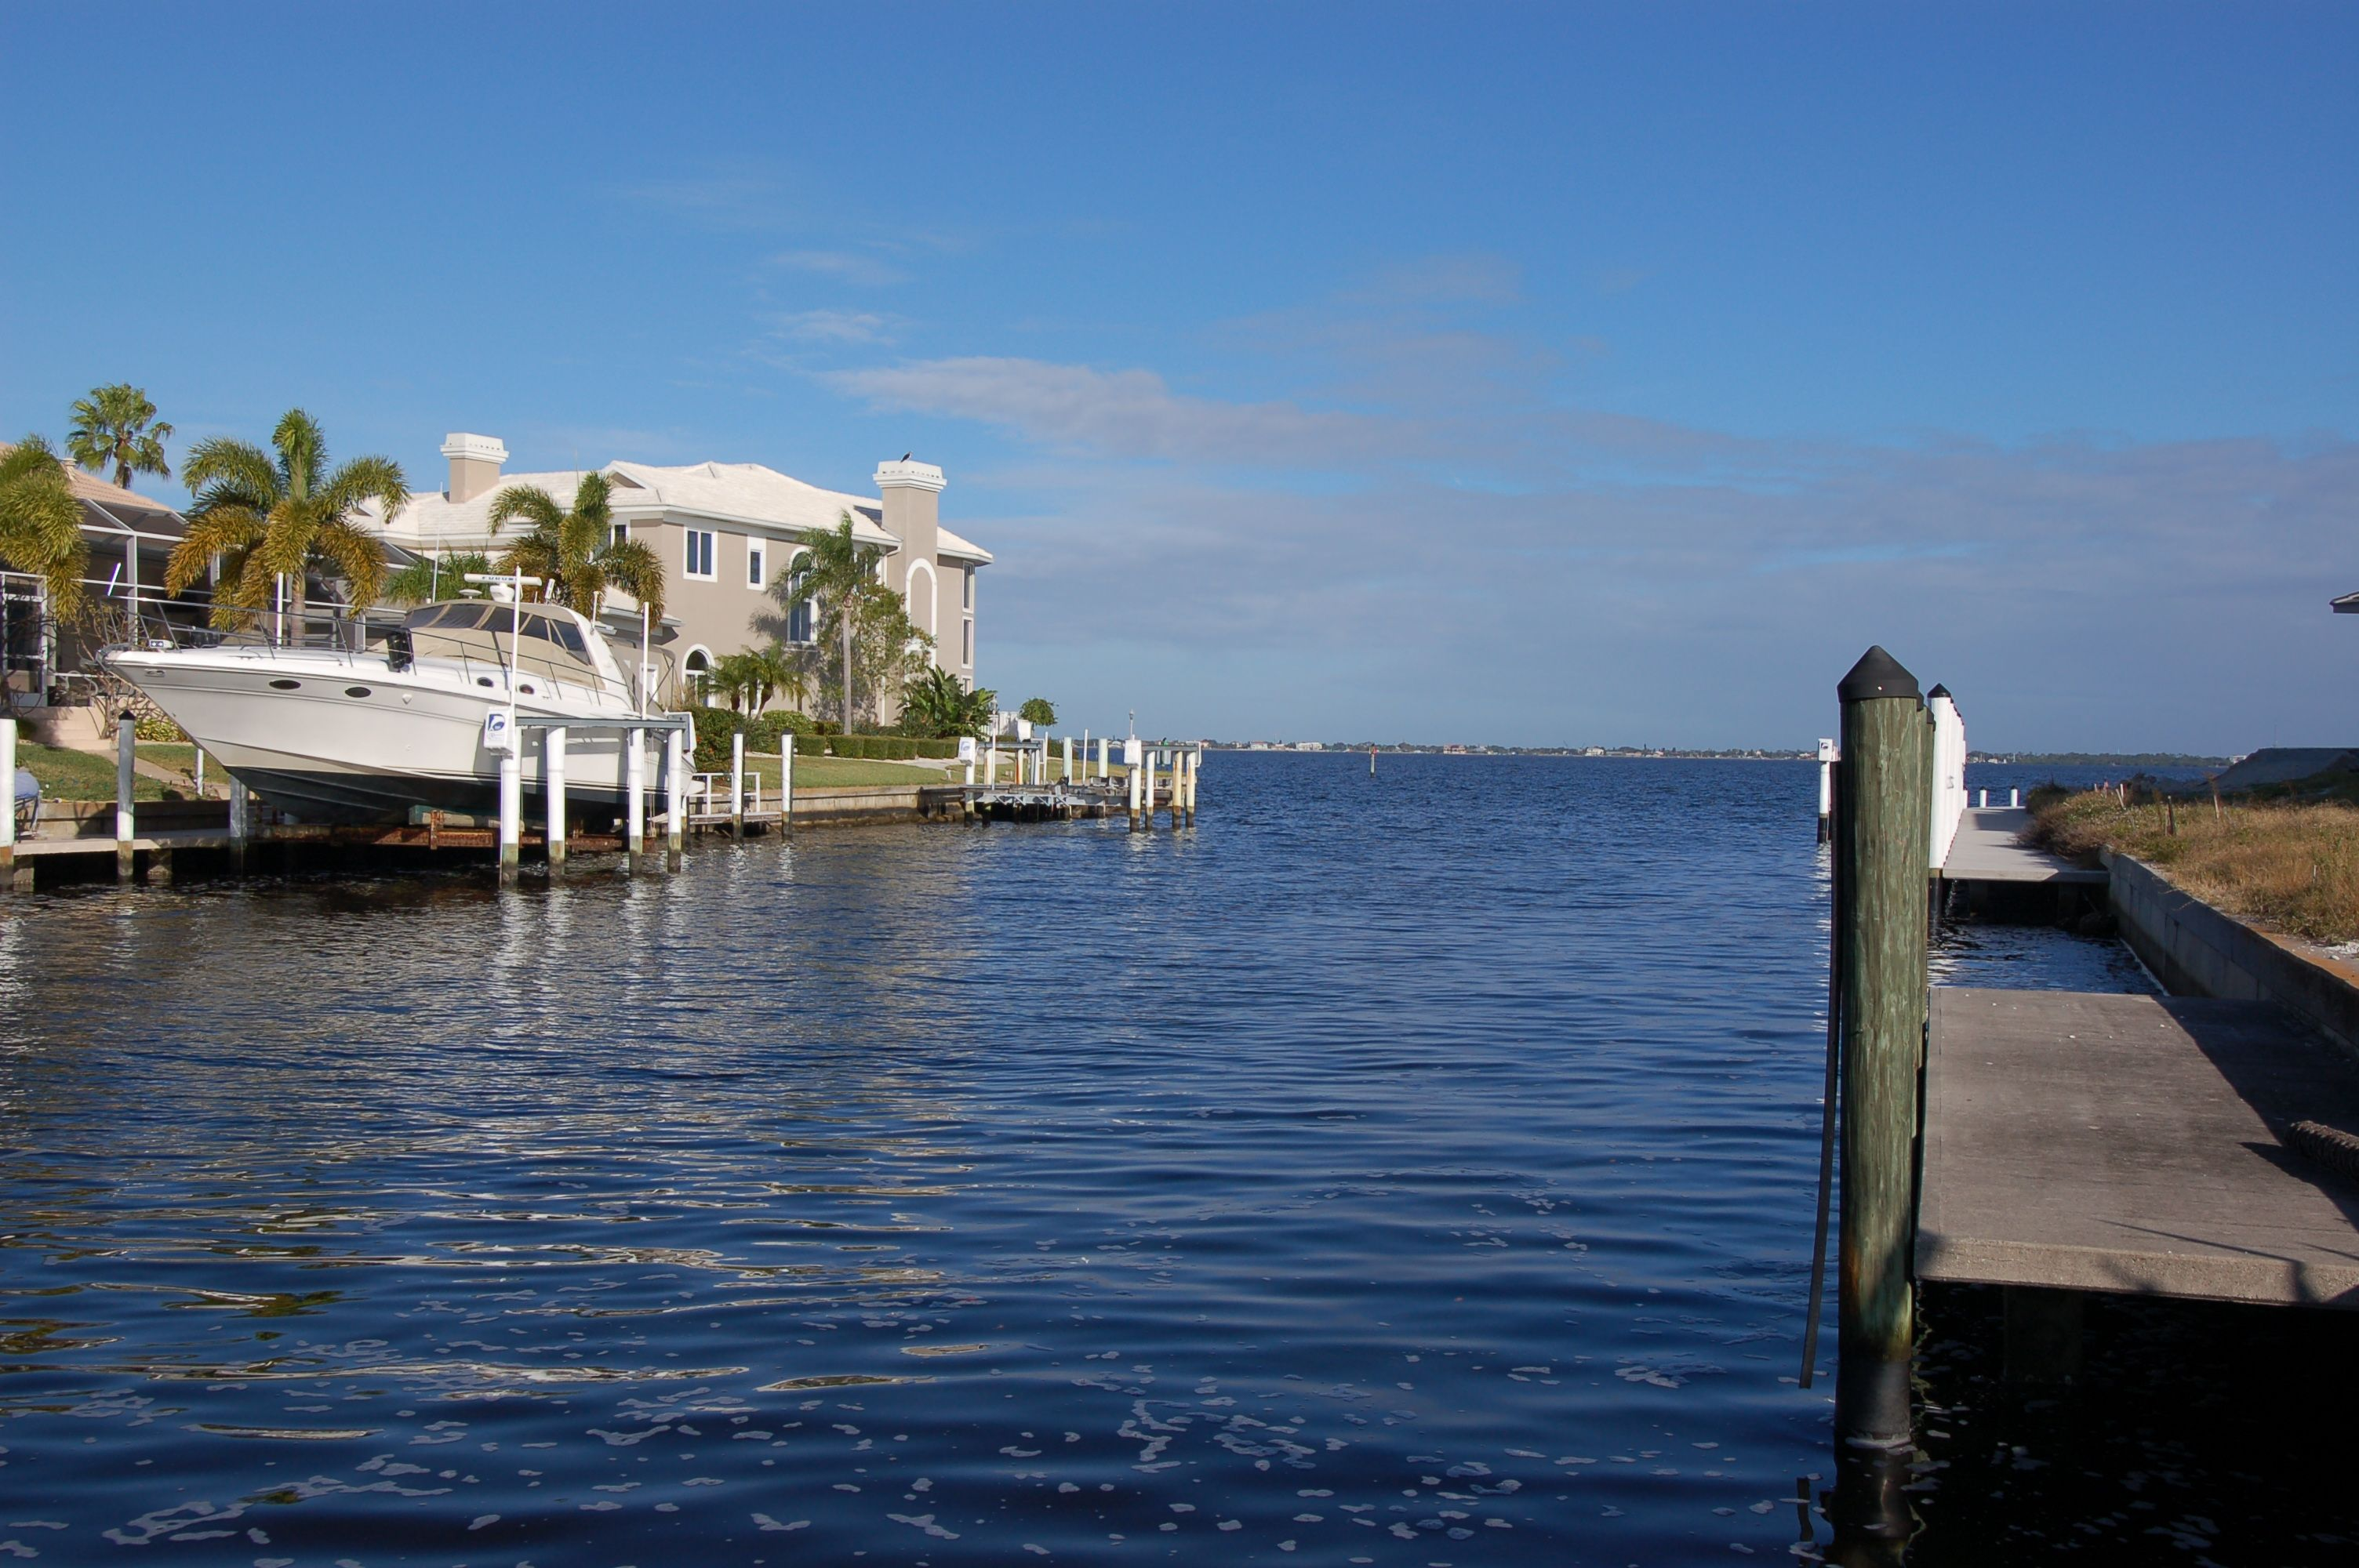 Last Week We Added A New Listing With An Amazing Waterfront View Could You Imagine Having This View From Your Back Yard Check Th Punta Gorda Ocean Waterfront